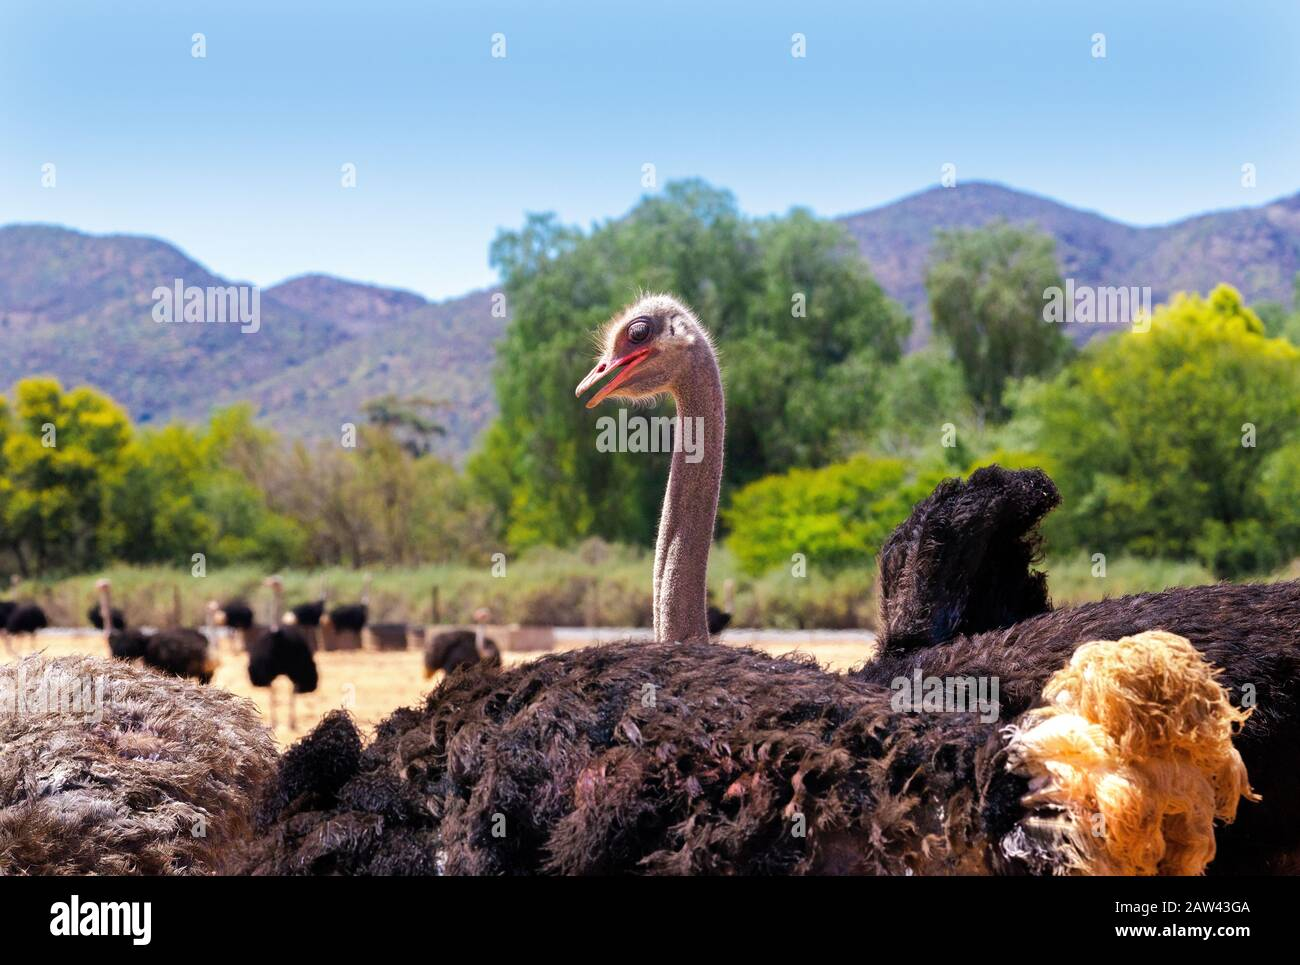 Ostrich in fields in the Garden Route town of Oudtshoorn, Western Cape, South Africa Stock Photo